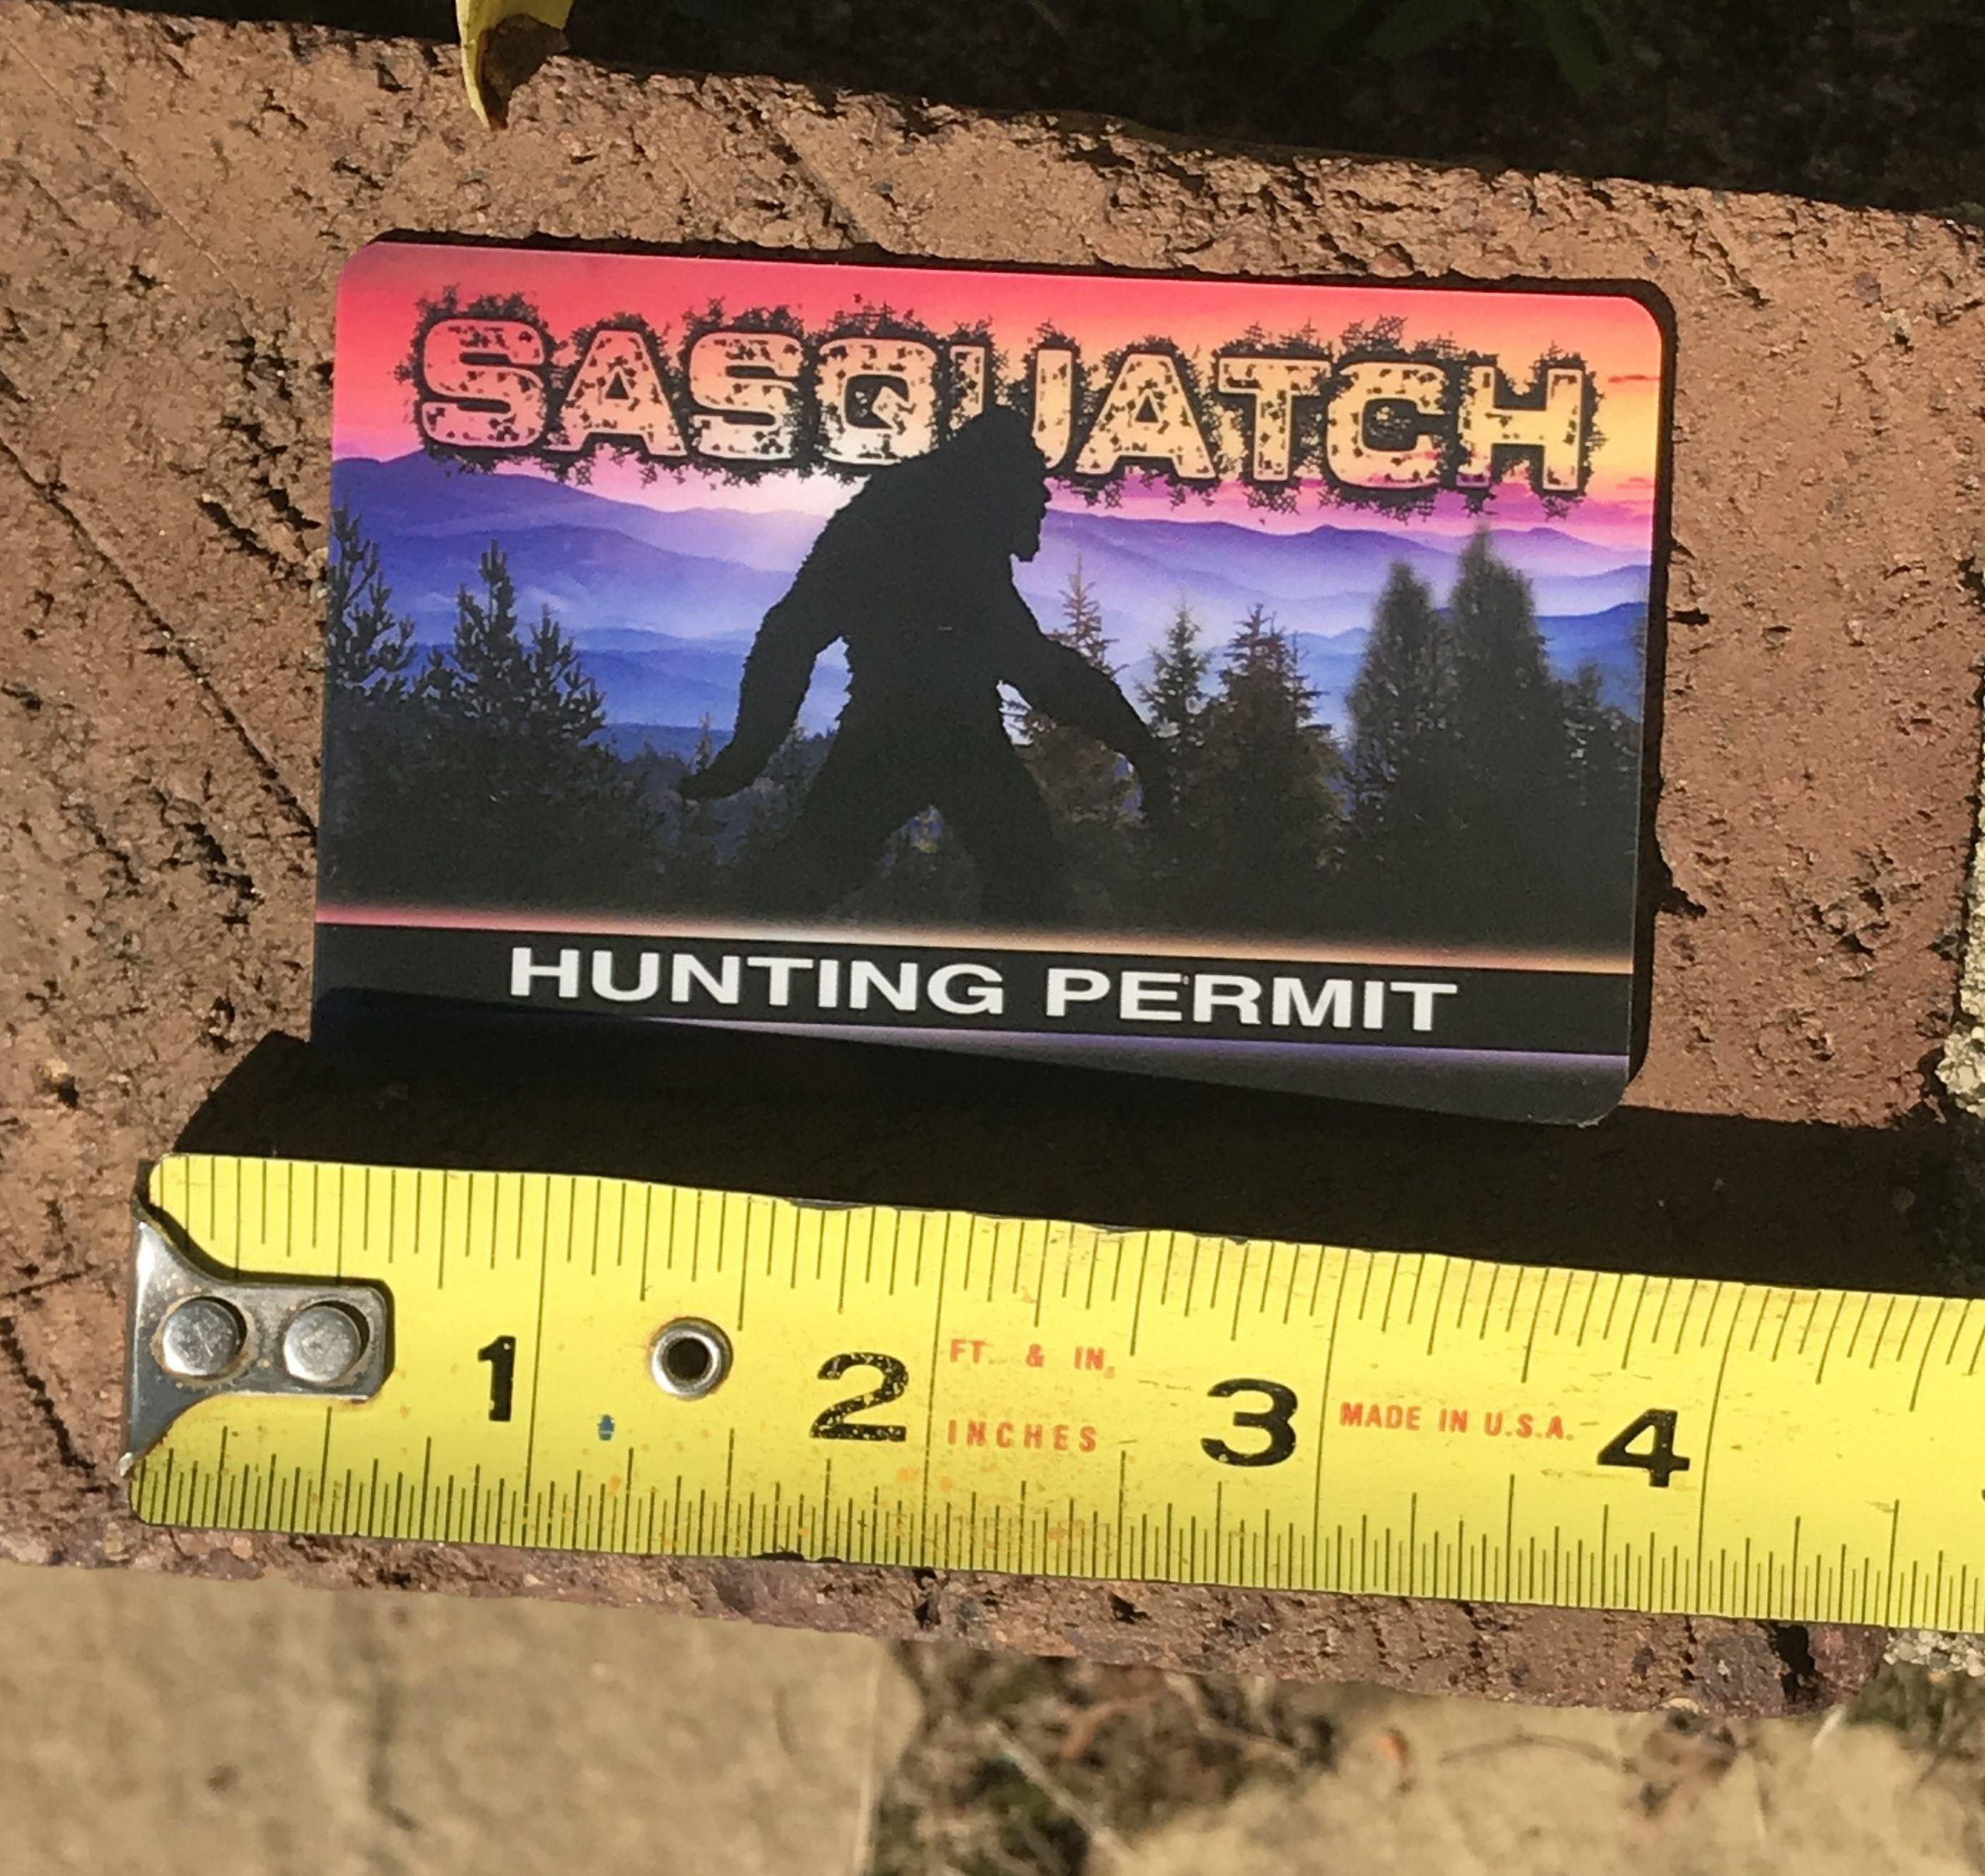 Hunting Gifts For Kids  Sasquatch Hunting Permit Card Fun Gifts for Kids Gifts